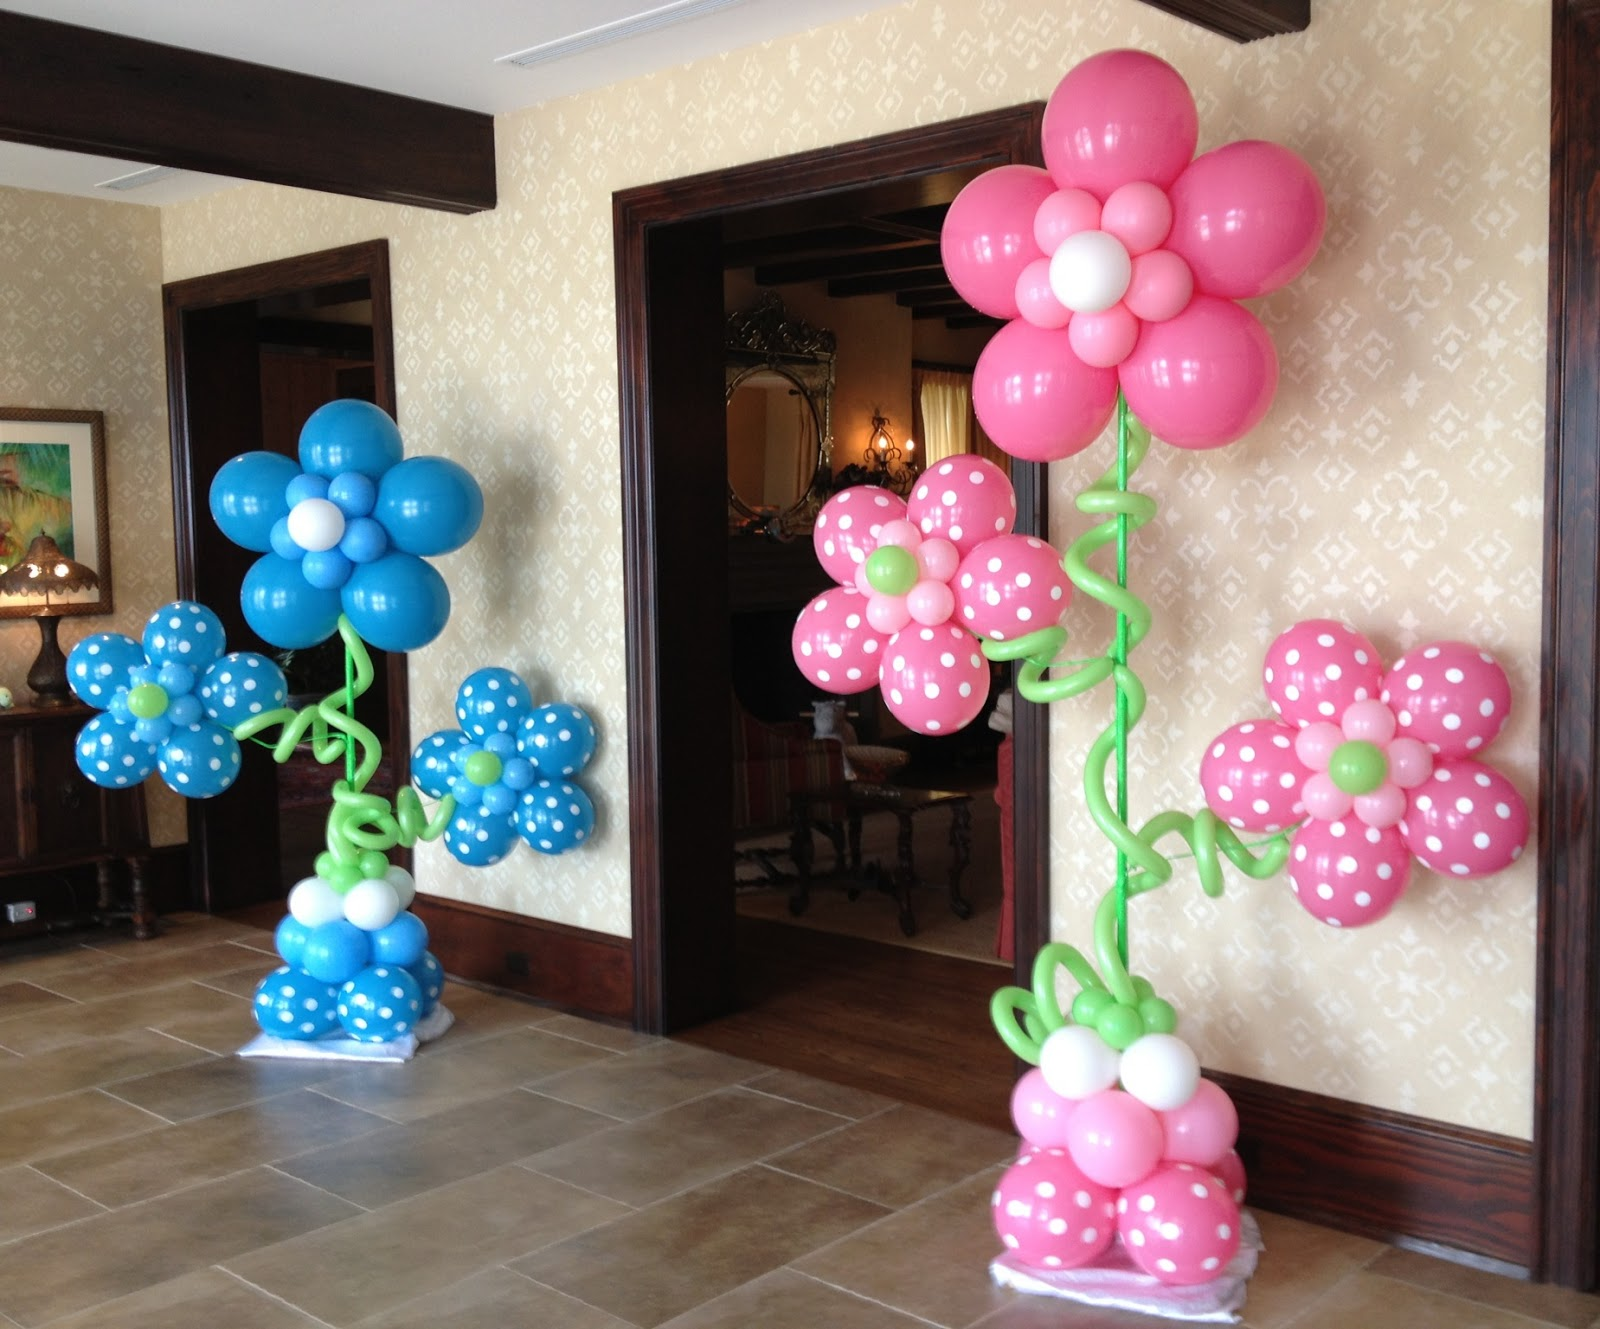 Party people event decorating company june 2013 for Balloon decoration accessories